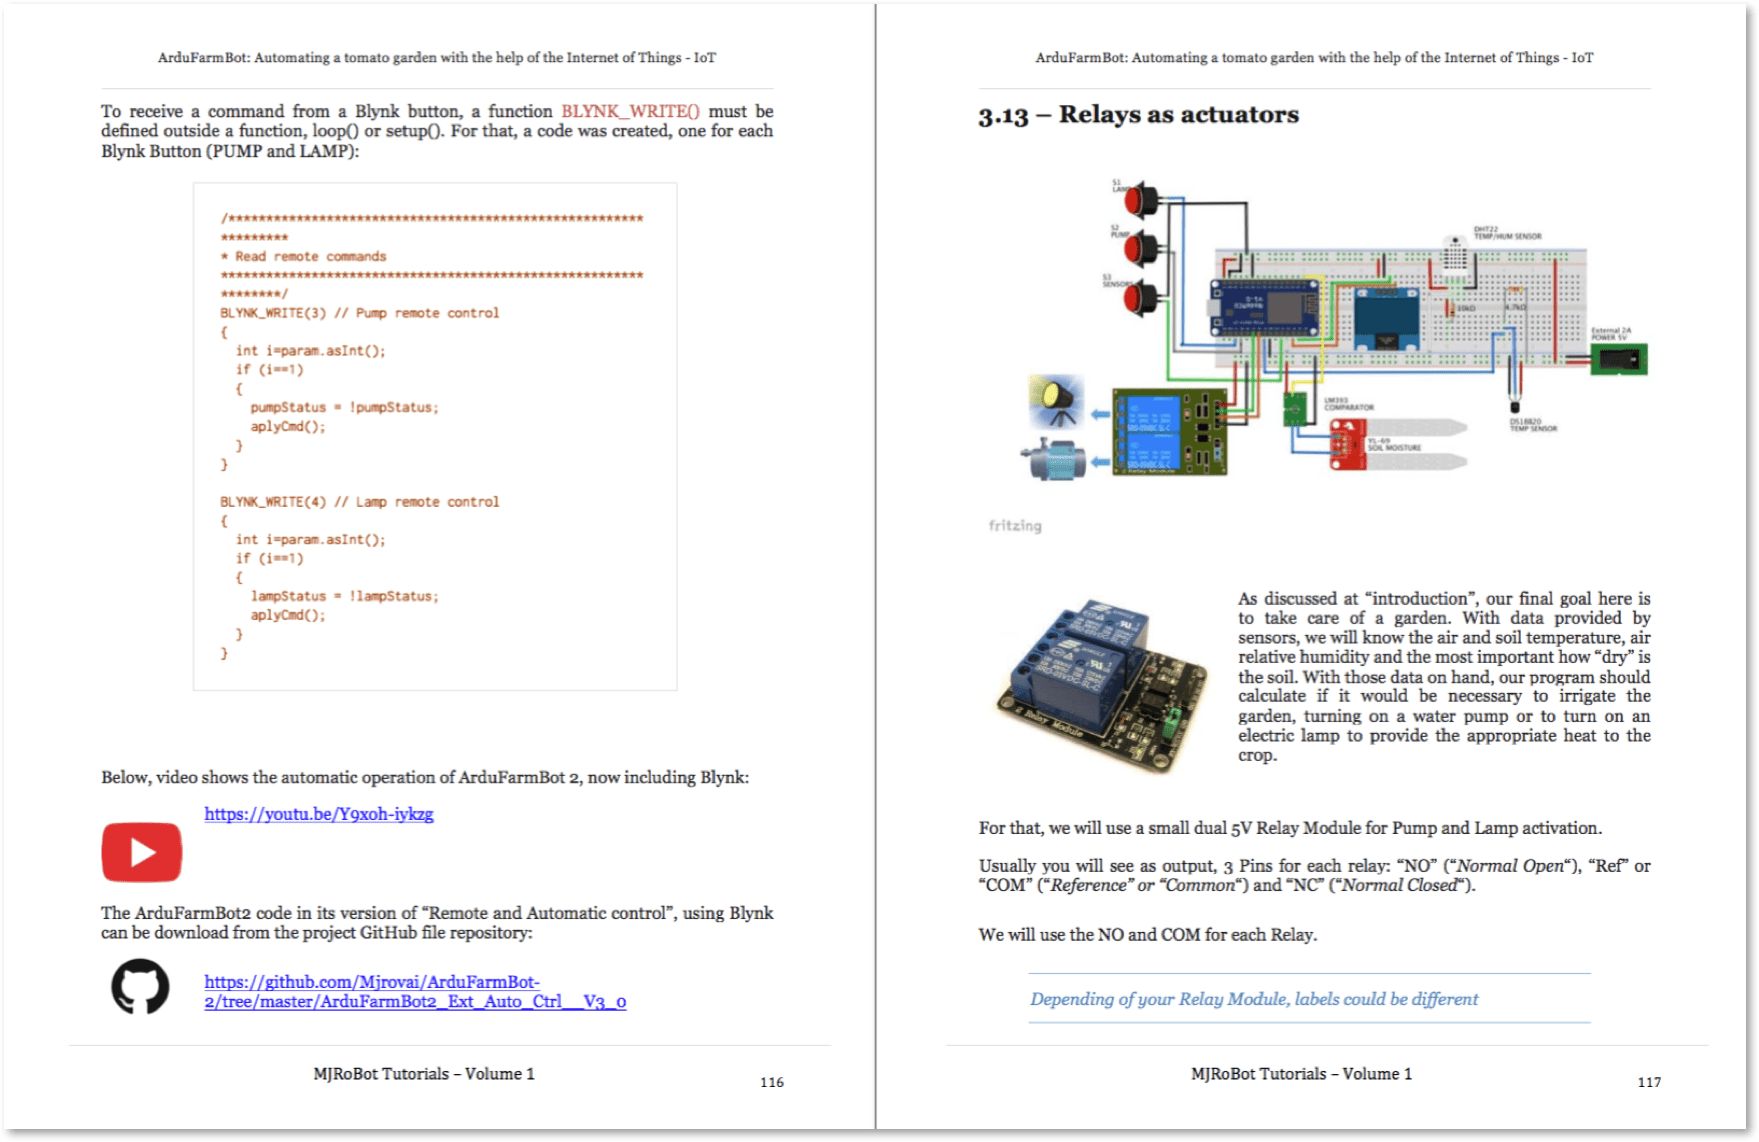 reading wire diagrams 2003 honda crv ac wiring diagram automatic gardening system with nodemcu and blynk the ardufarmbot all key stages of project are documented in detail through explanatory texts block high resolution color photos electrical using